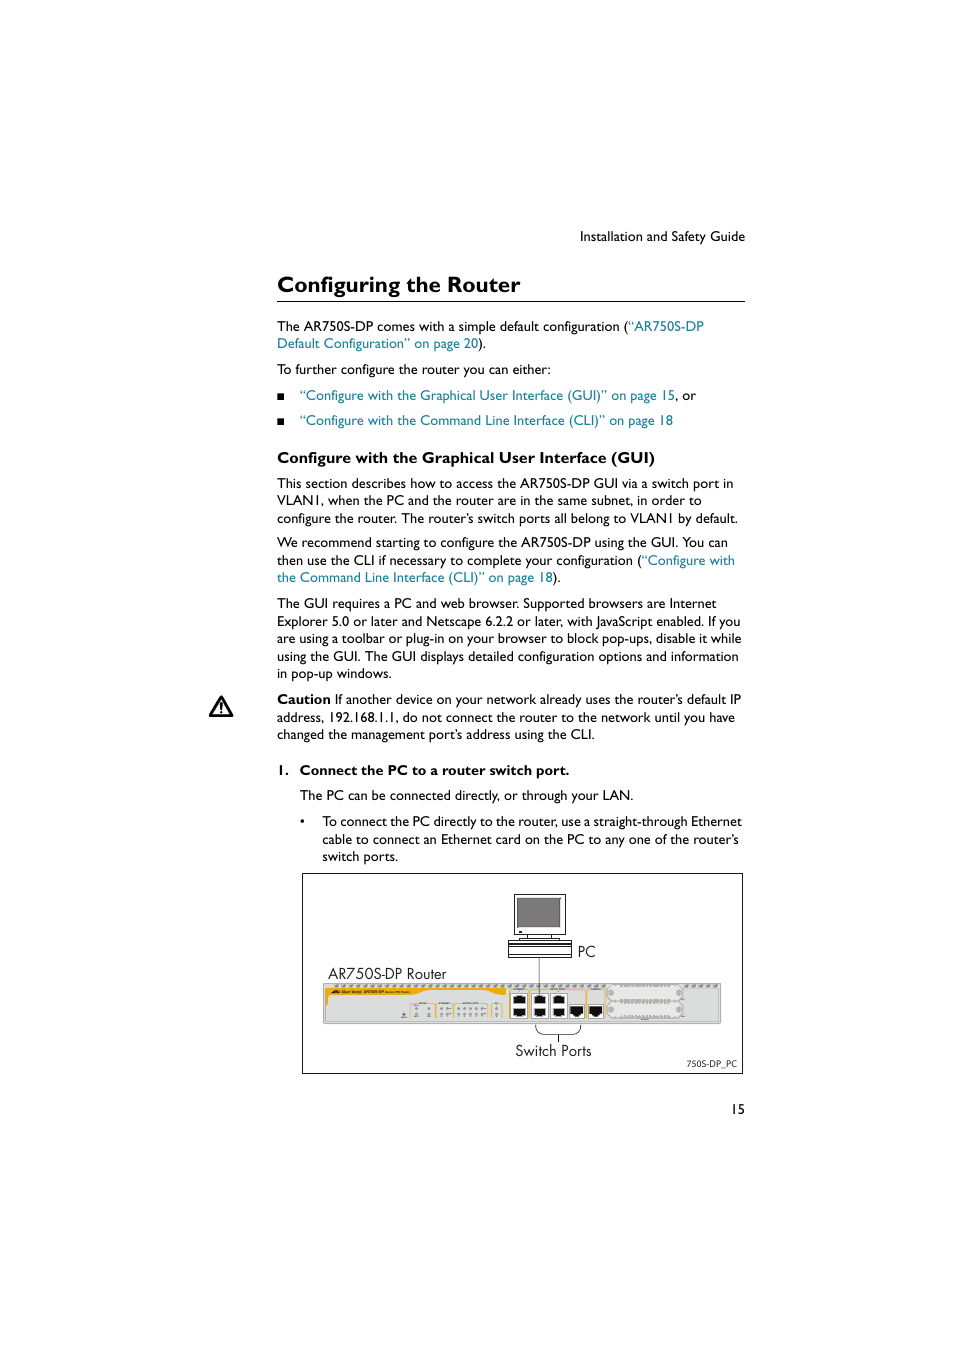 Configuring The Router Allied Telesis Ar750s Dp Secure Vpn Straight Through Ethernet Cable User Manual Page 16 50